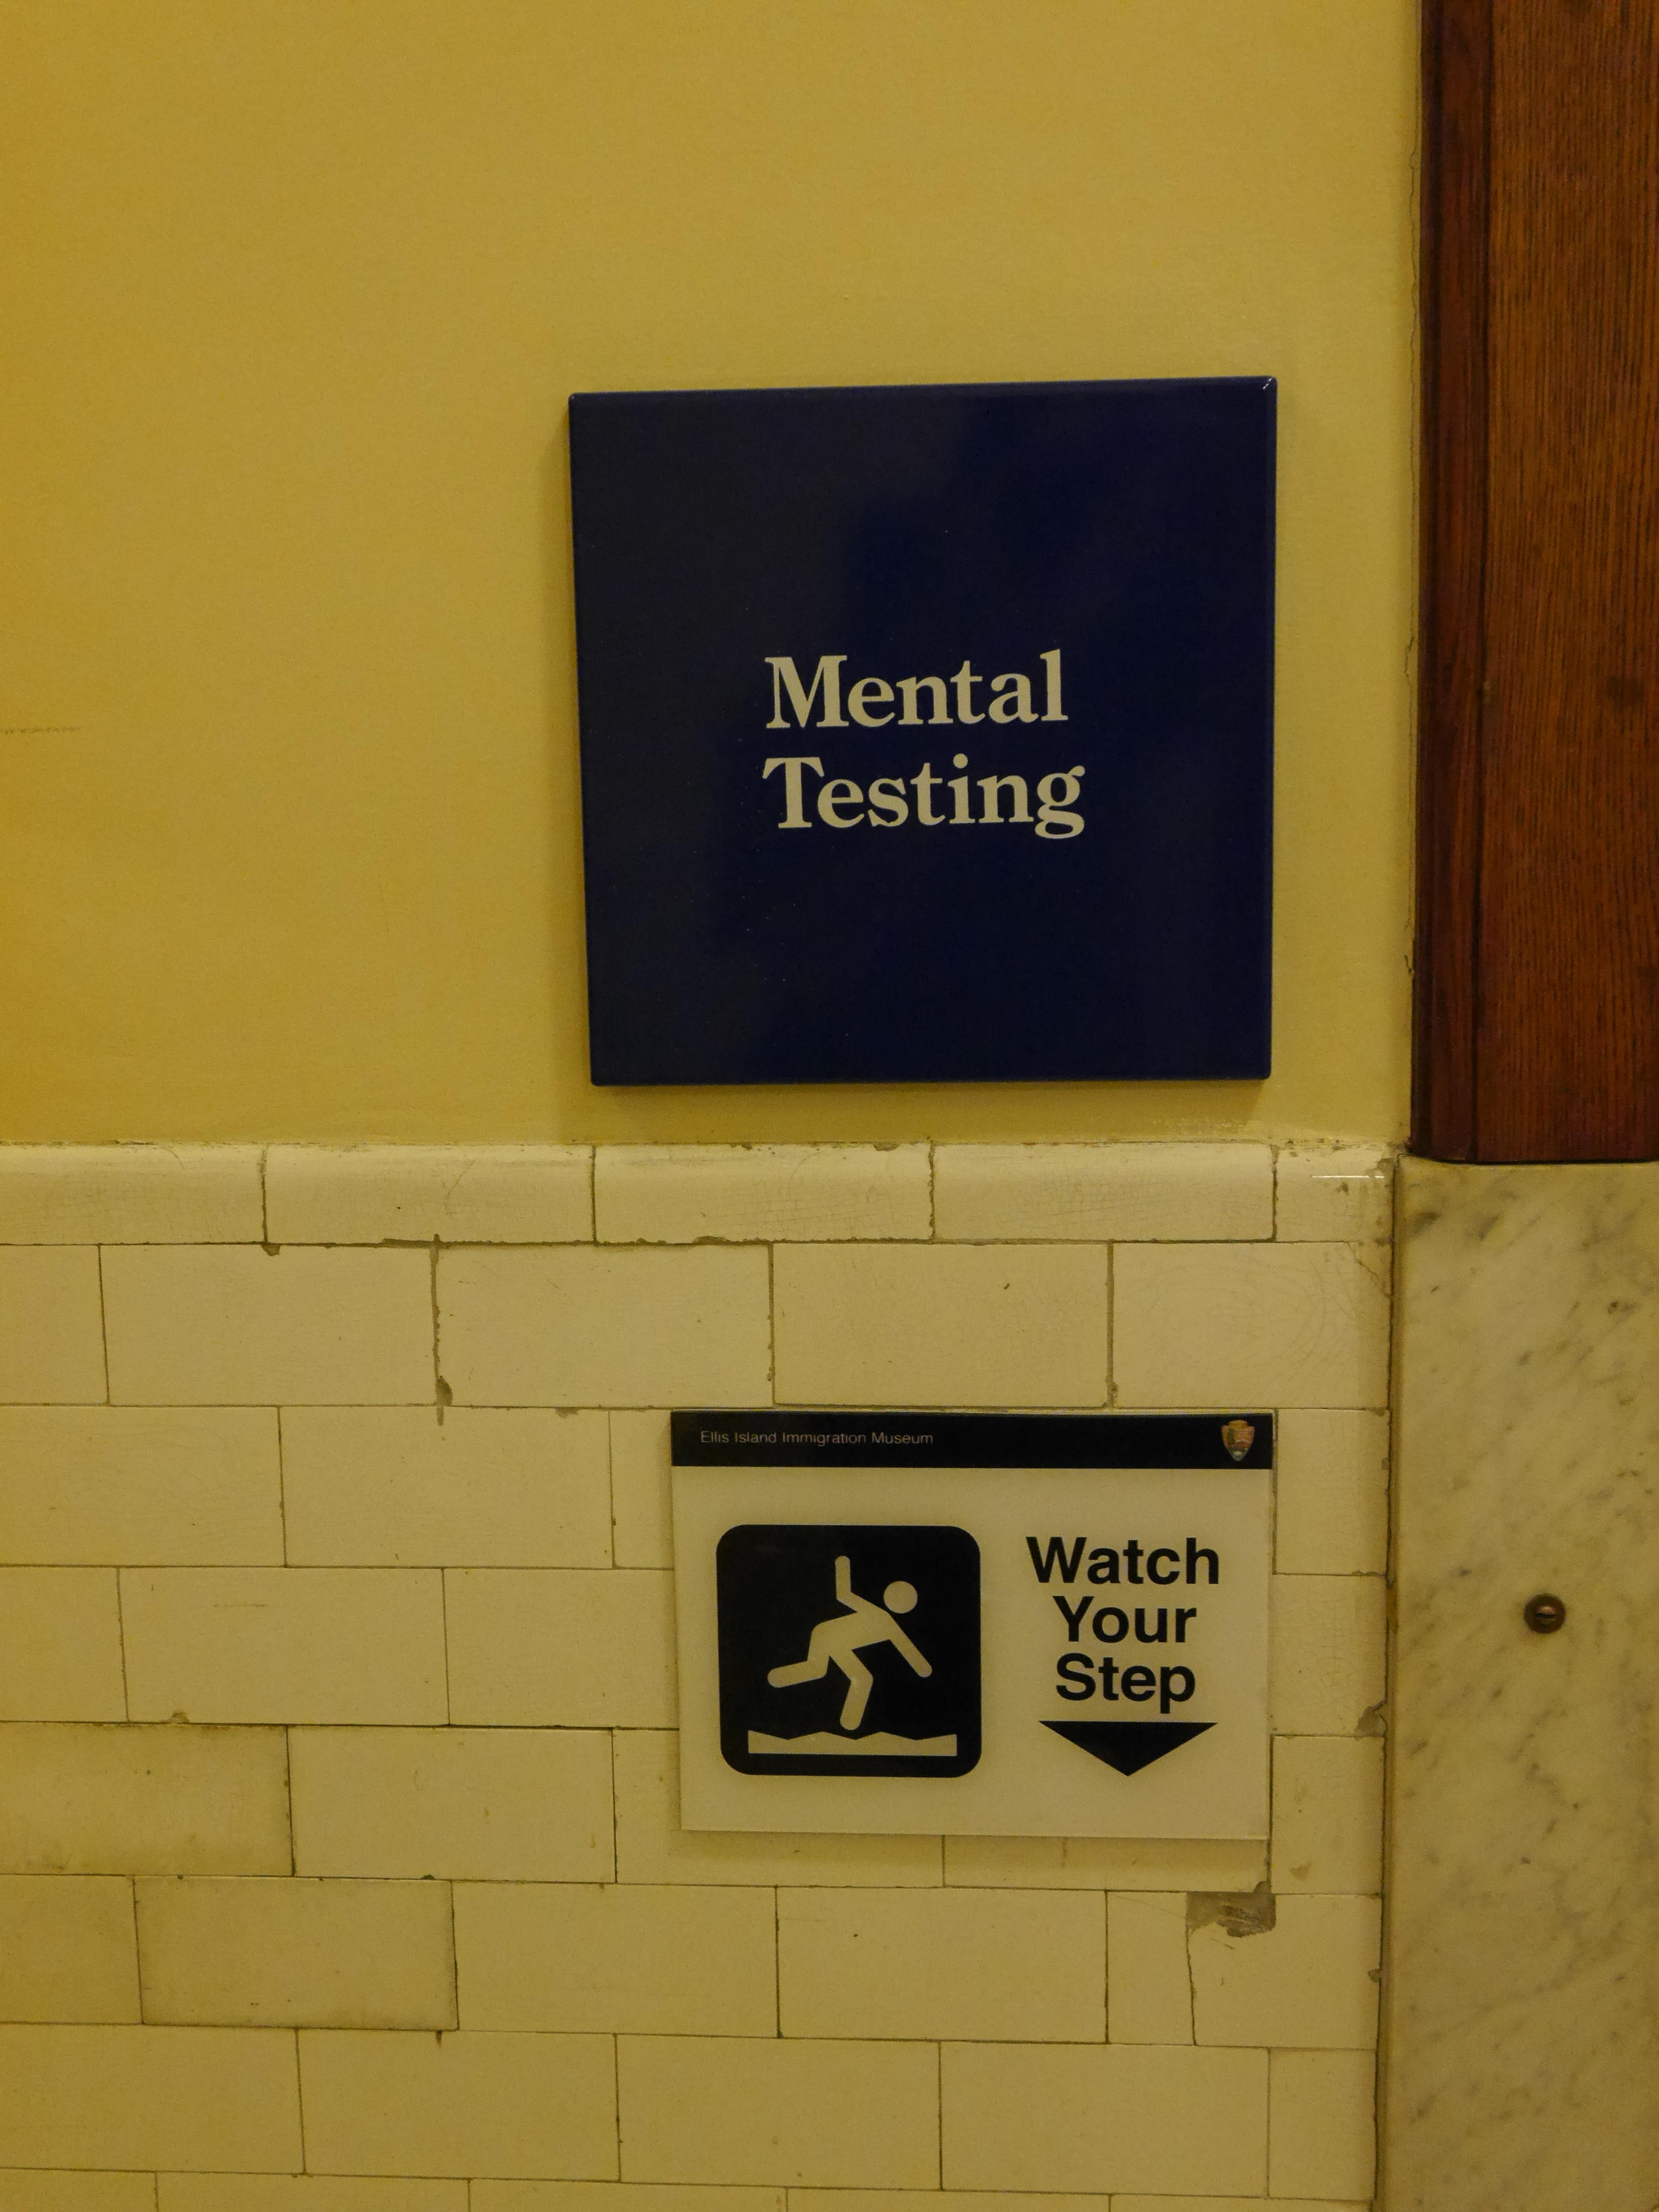 I'm not sure the testing is entirely comprised of being able to watch your step, but I imagine that's at least one component.